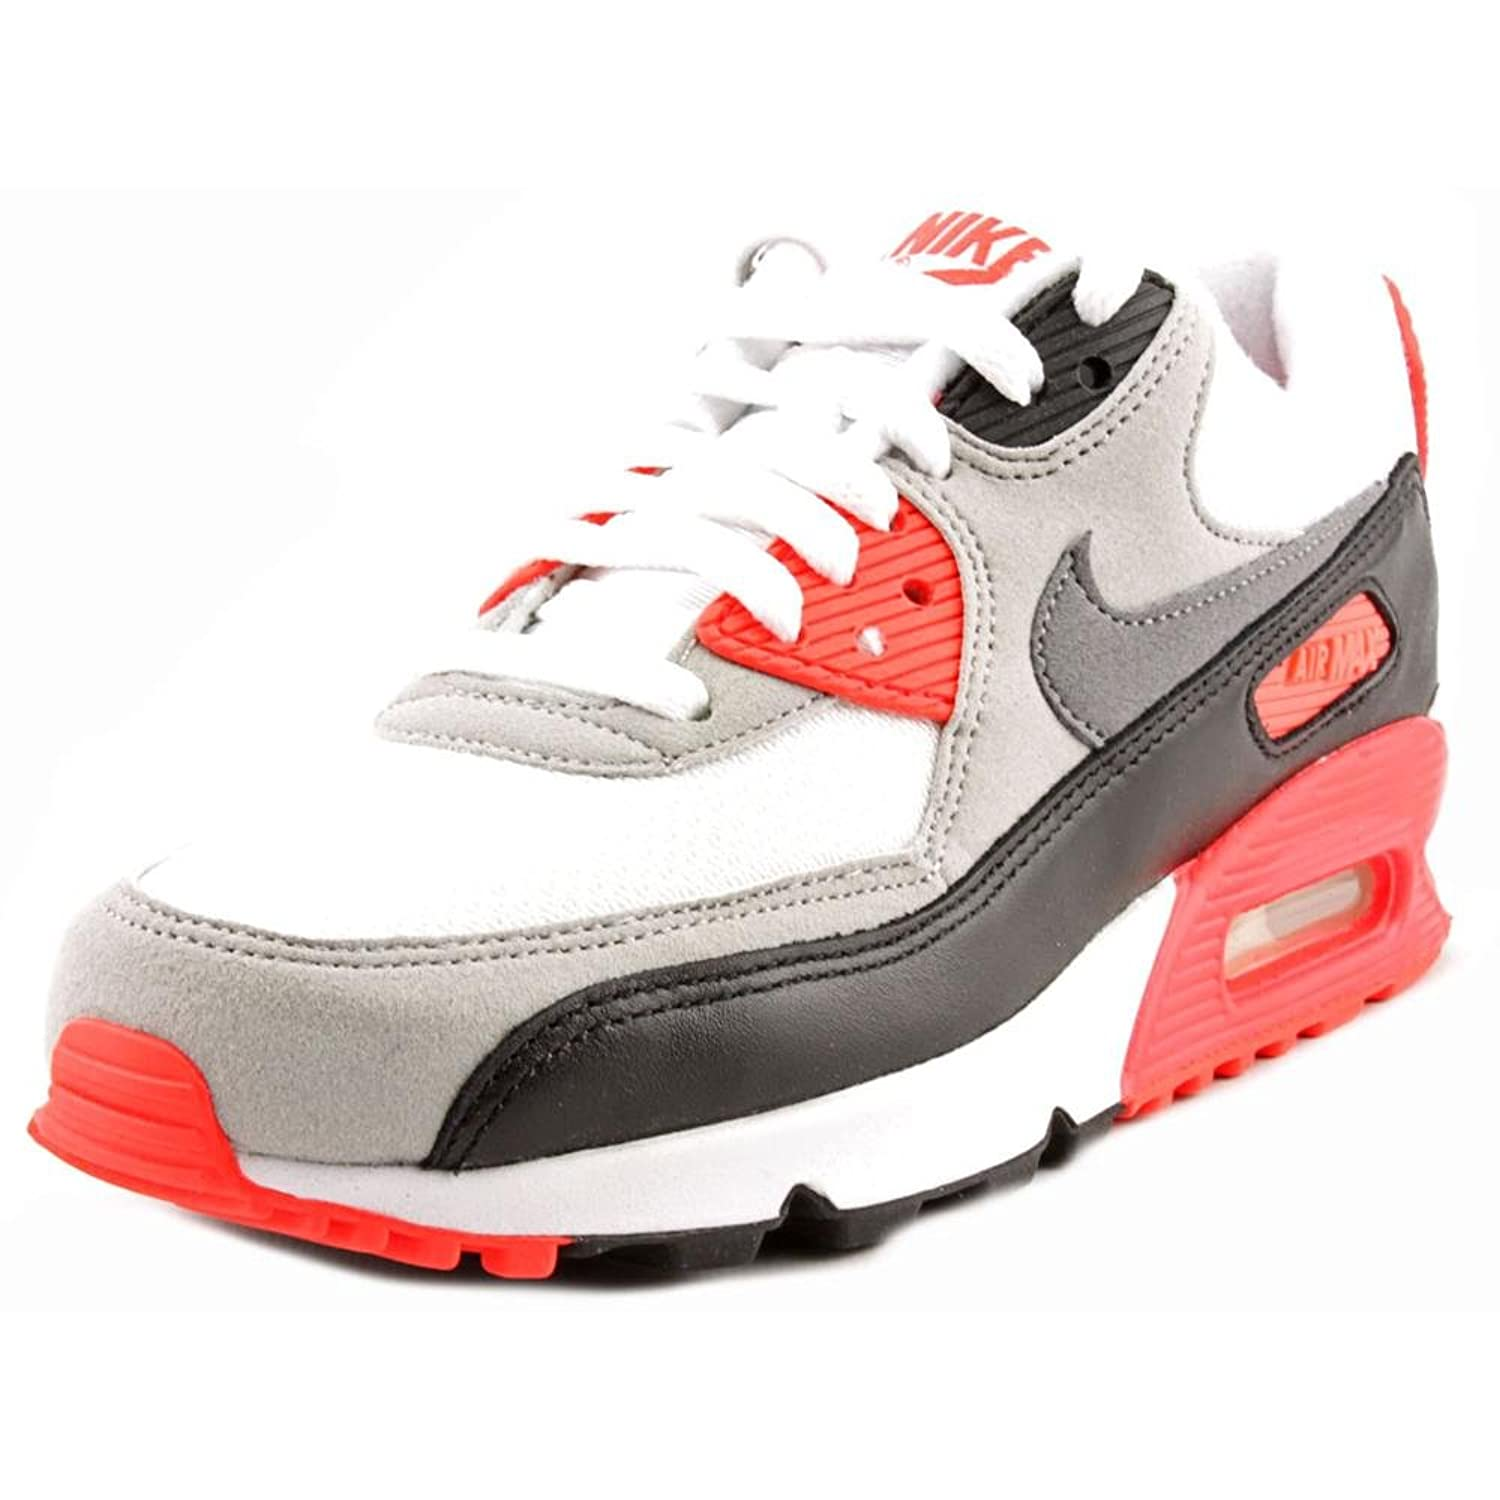 WoMen's Nike WMNS Air Max 90 OG Running Shoes 742455 100